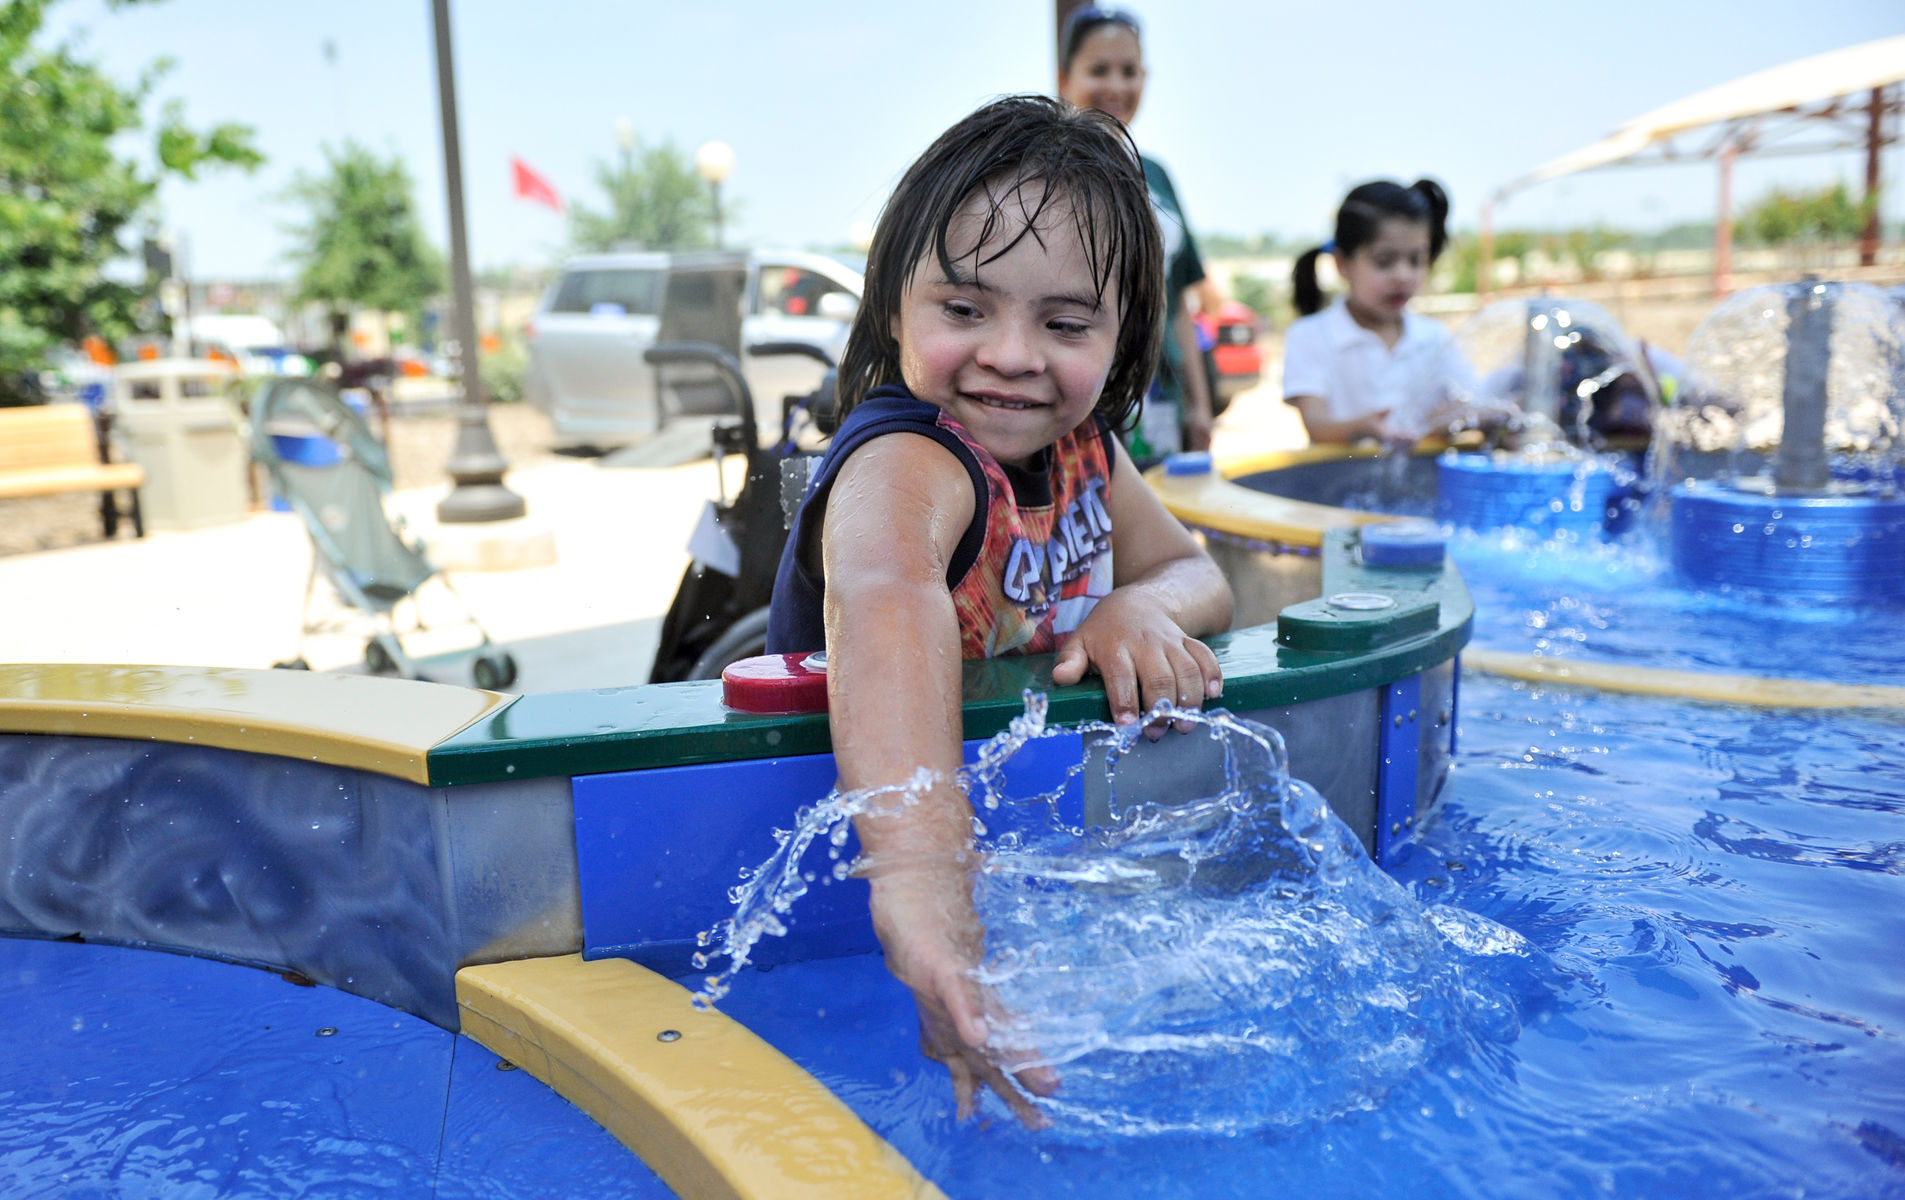 Texas to Open First Water Park Fully Accessible for Kids With Special Needs